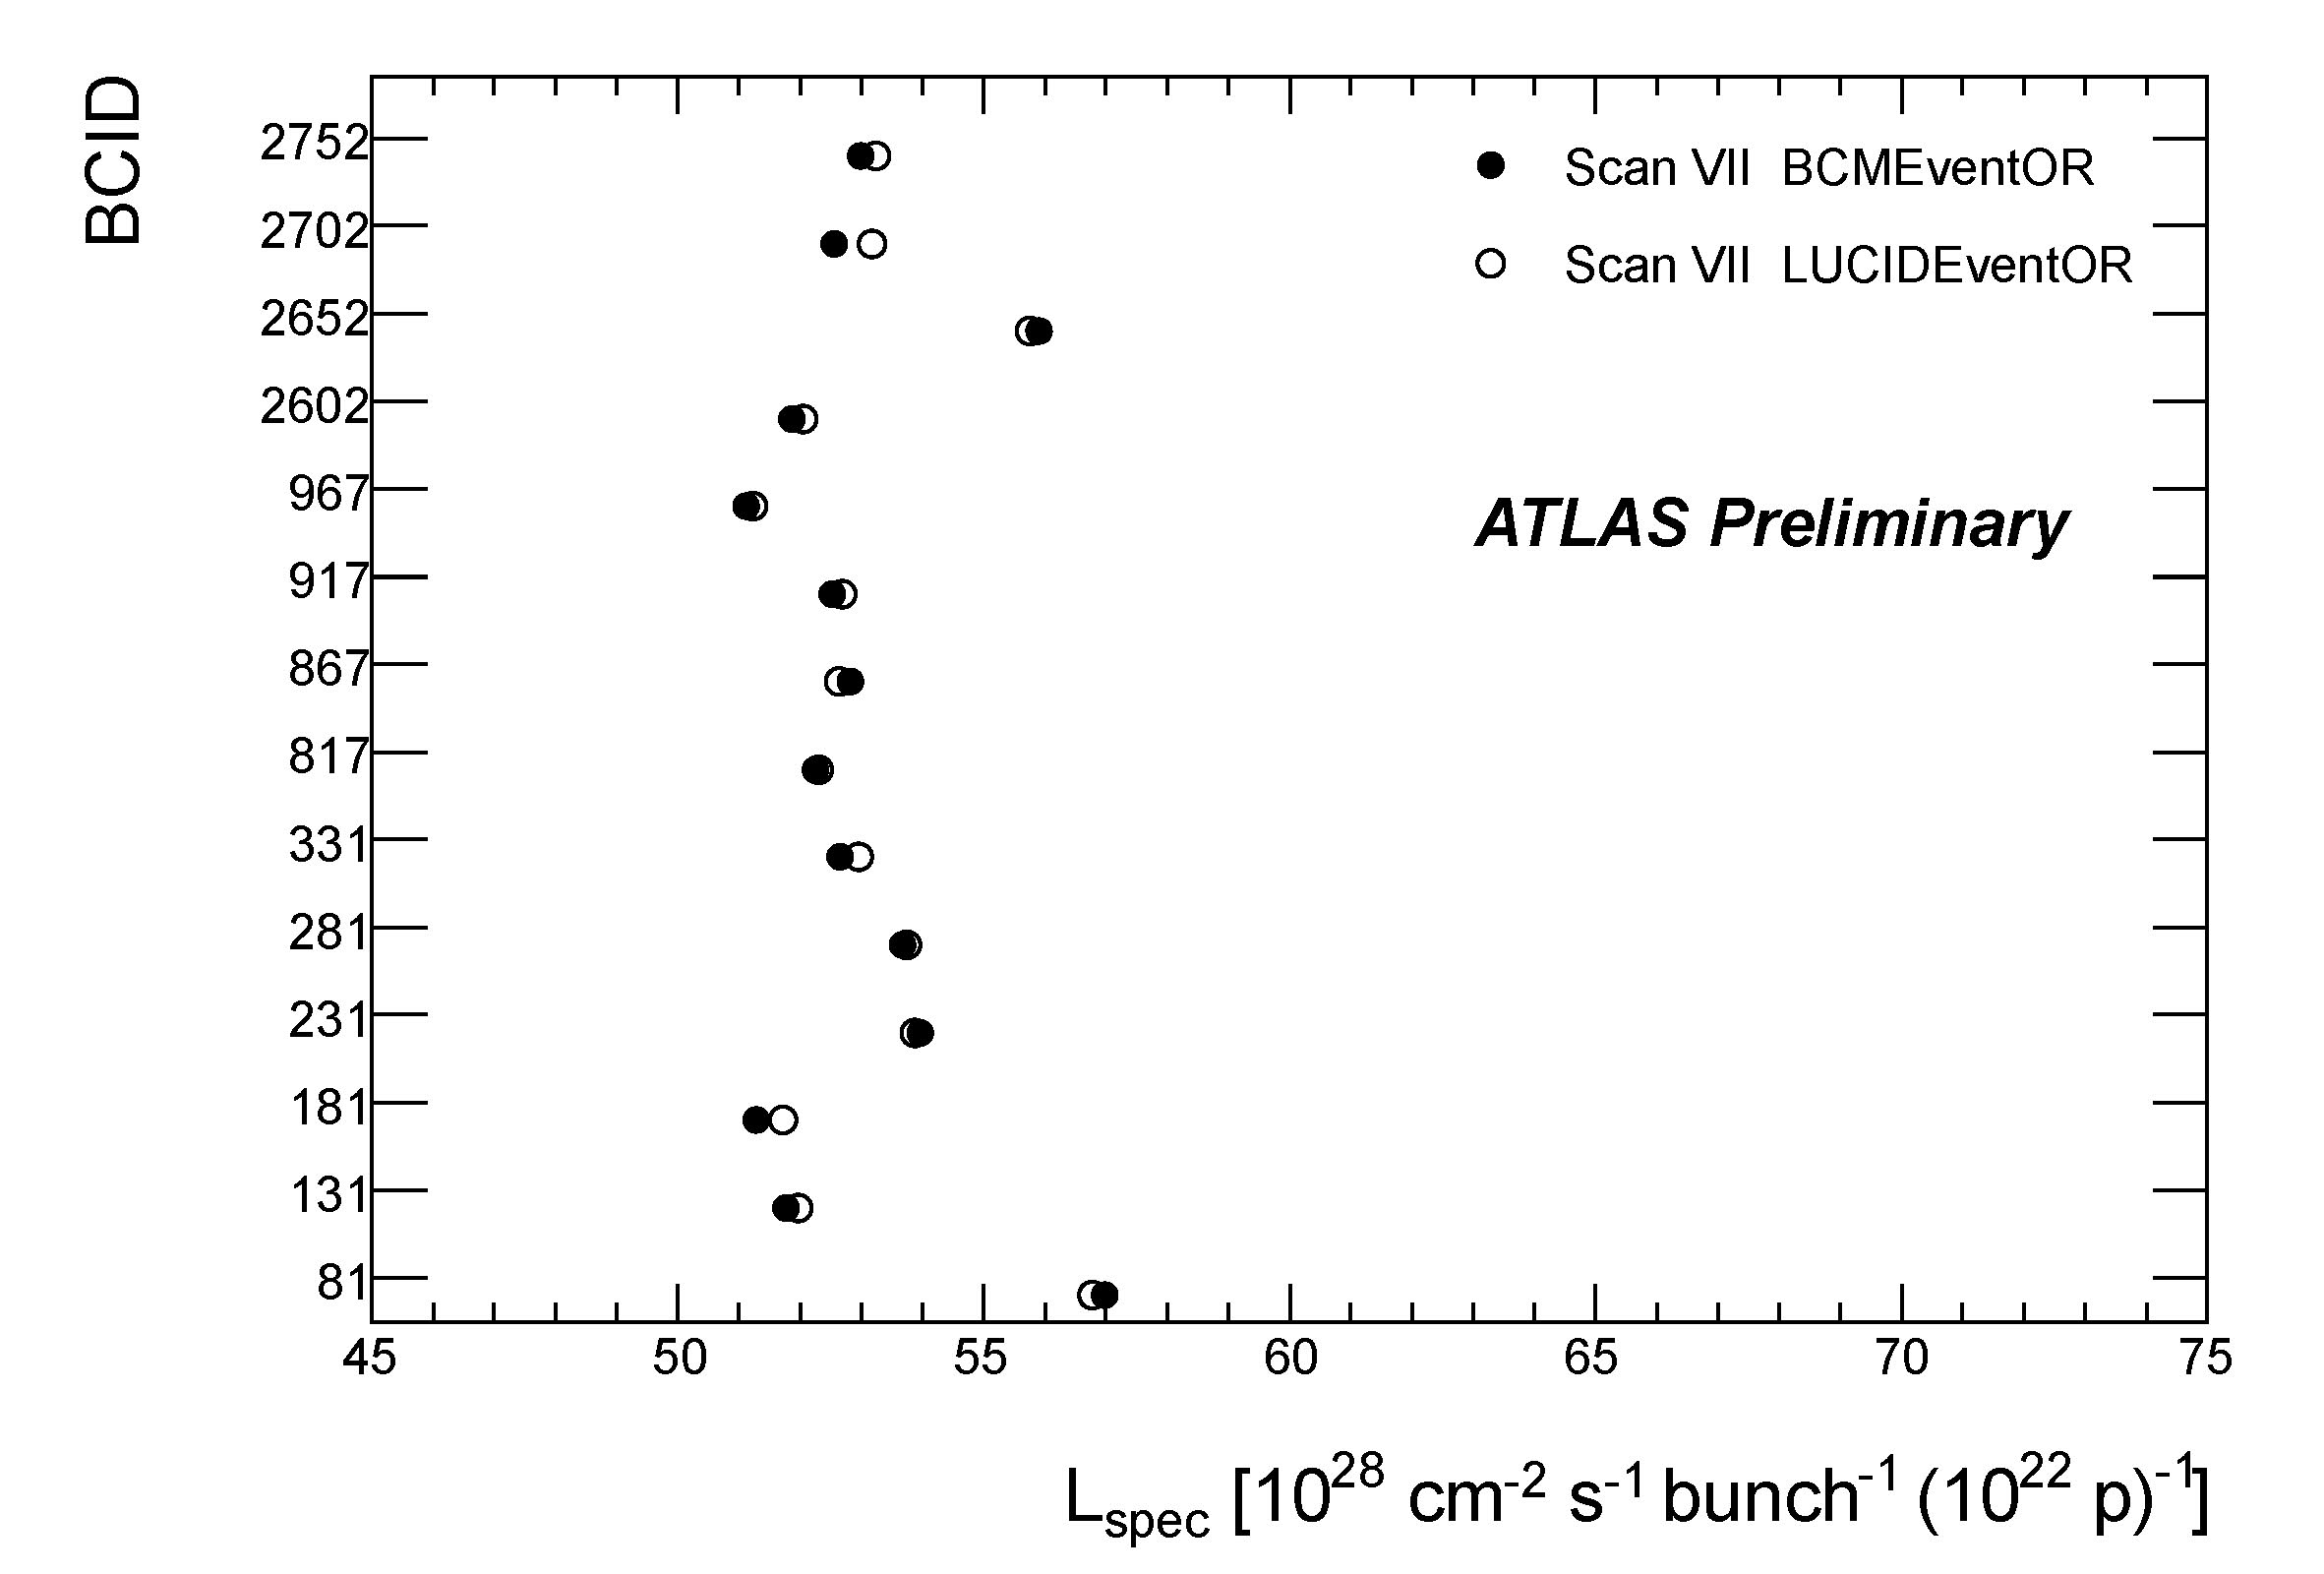 https://atlas.web.cern.ch/Atlas/GROUPS/DATAPREPARATION/PublicPlots/2011/Luminosity/ORLspecVsLUCIDVII.jpg